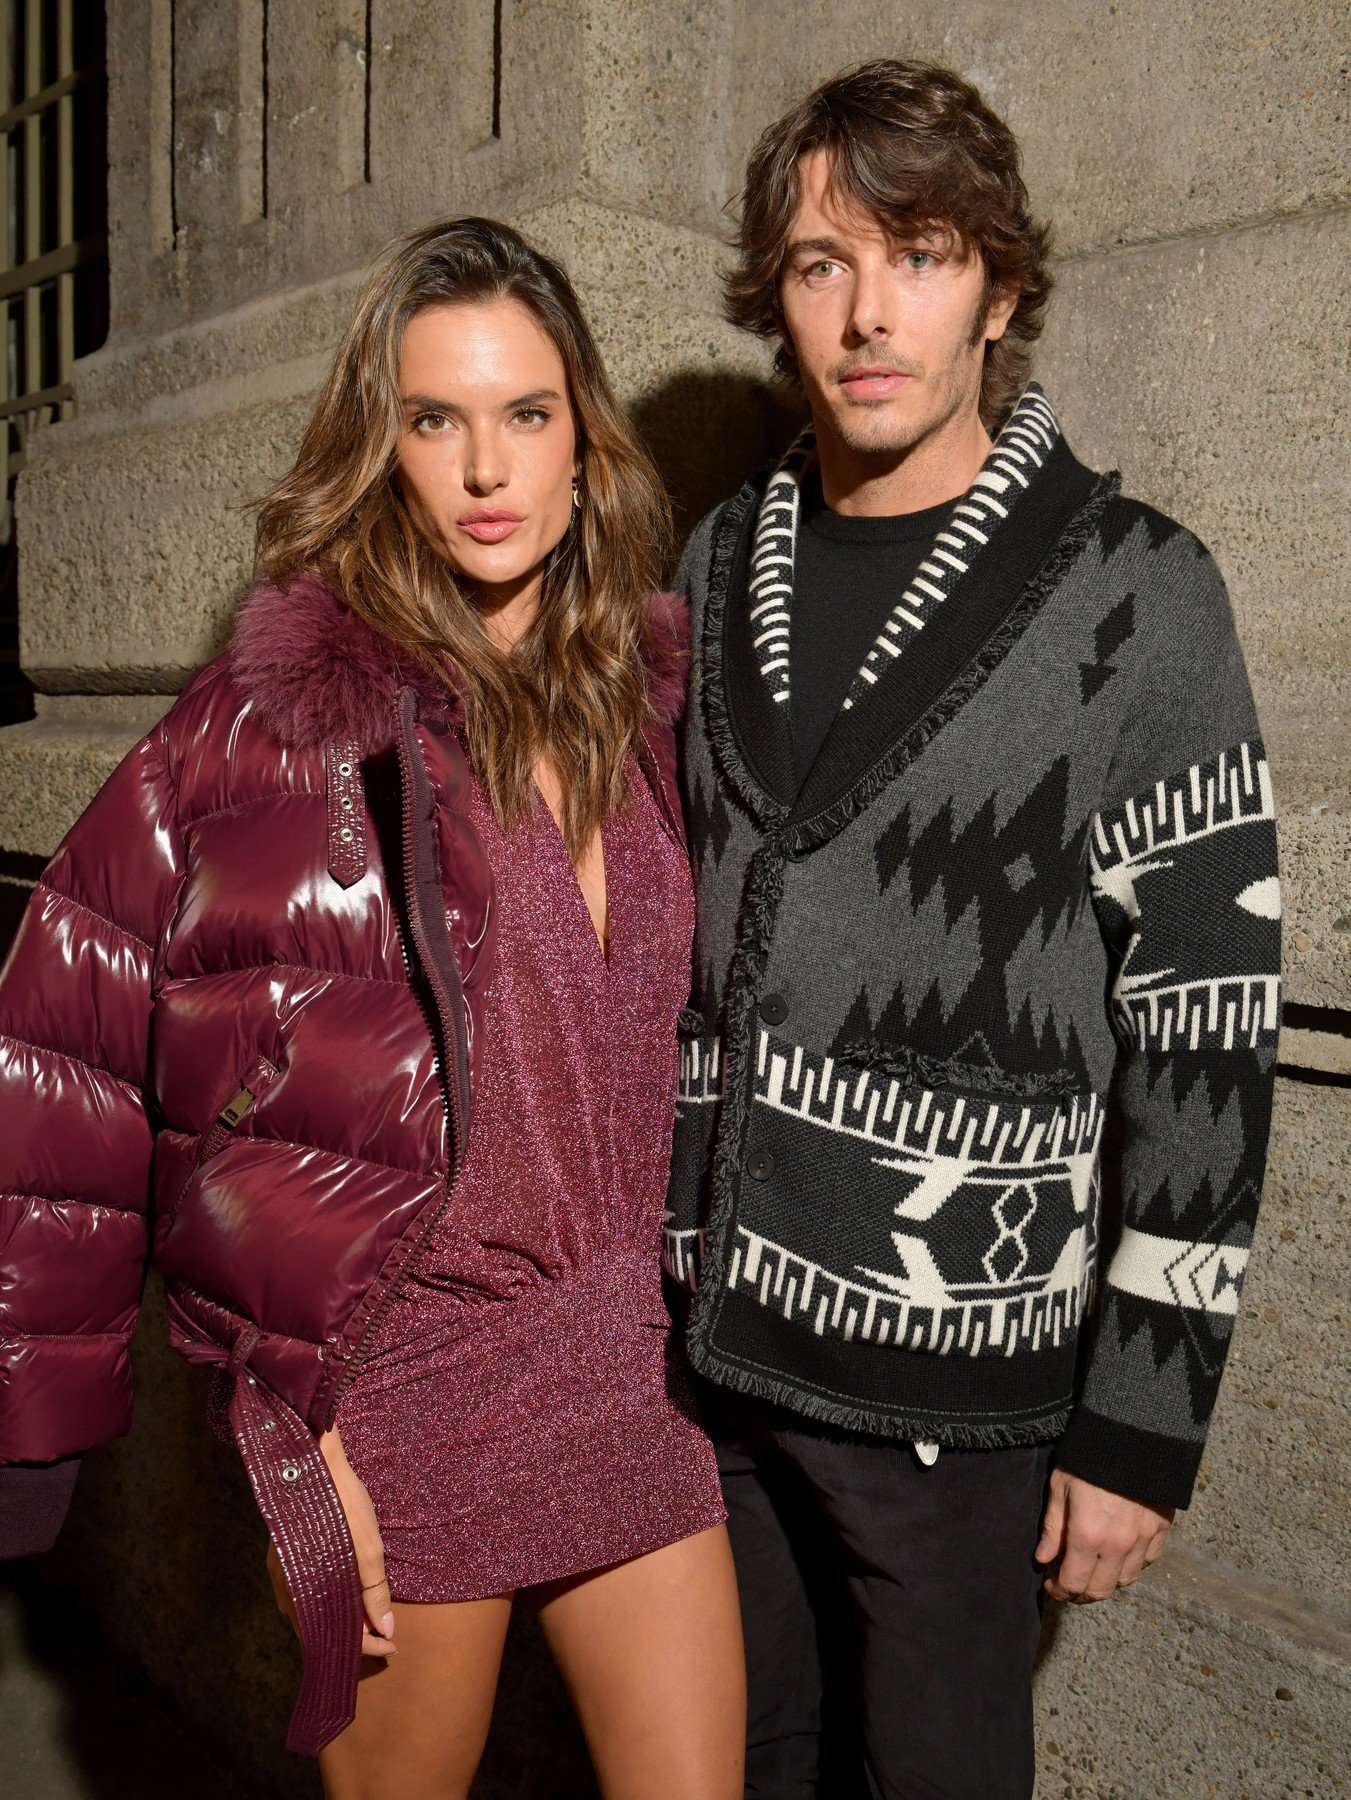 Alessandra Ambrosio and Nicolo Oddi in the front row Moncler Genius show, Front Row, Fall Winter 2019, Milan Fashion Week, Italy - 20 Feb 2019, Image: 414945914, License: Rights-managed, Restrictions: , Model Release: no, Credit line: Profimedia, TEMP Rex Features